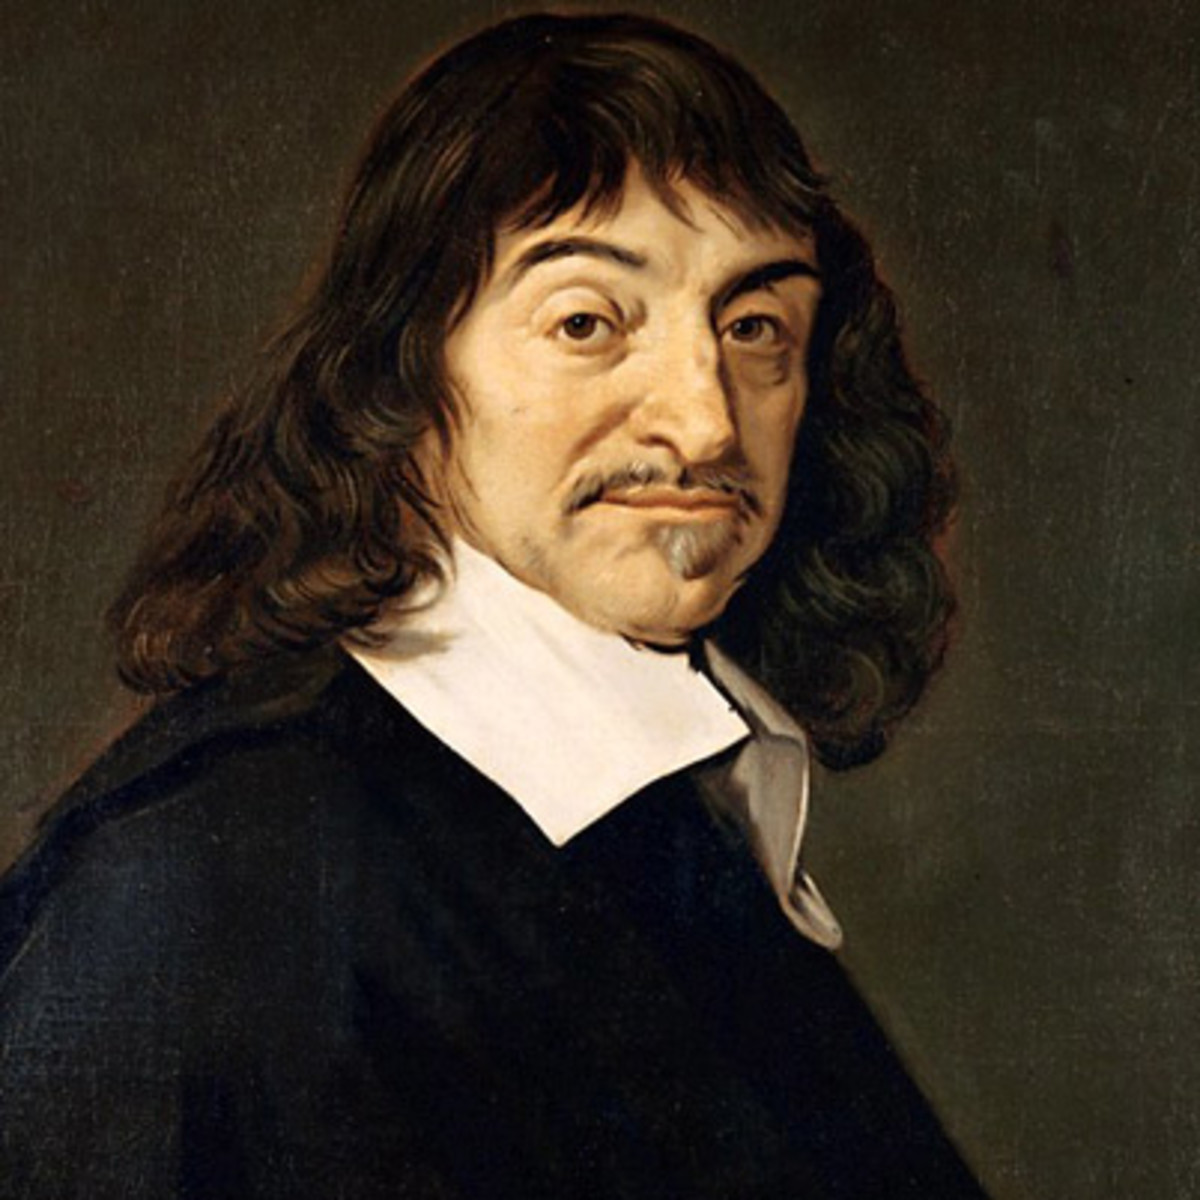 ren eacute descartes academic philosopher scientist mathematician reneacute descartes academic philosopher scientist mathematician com